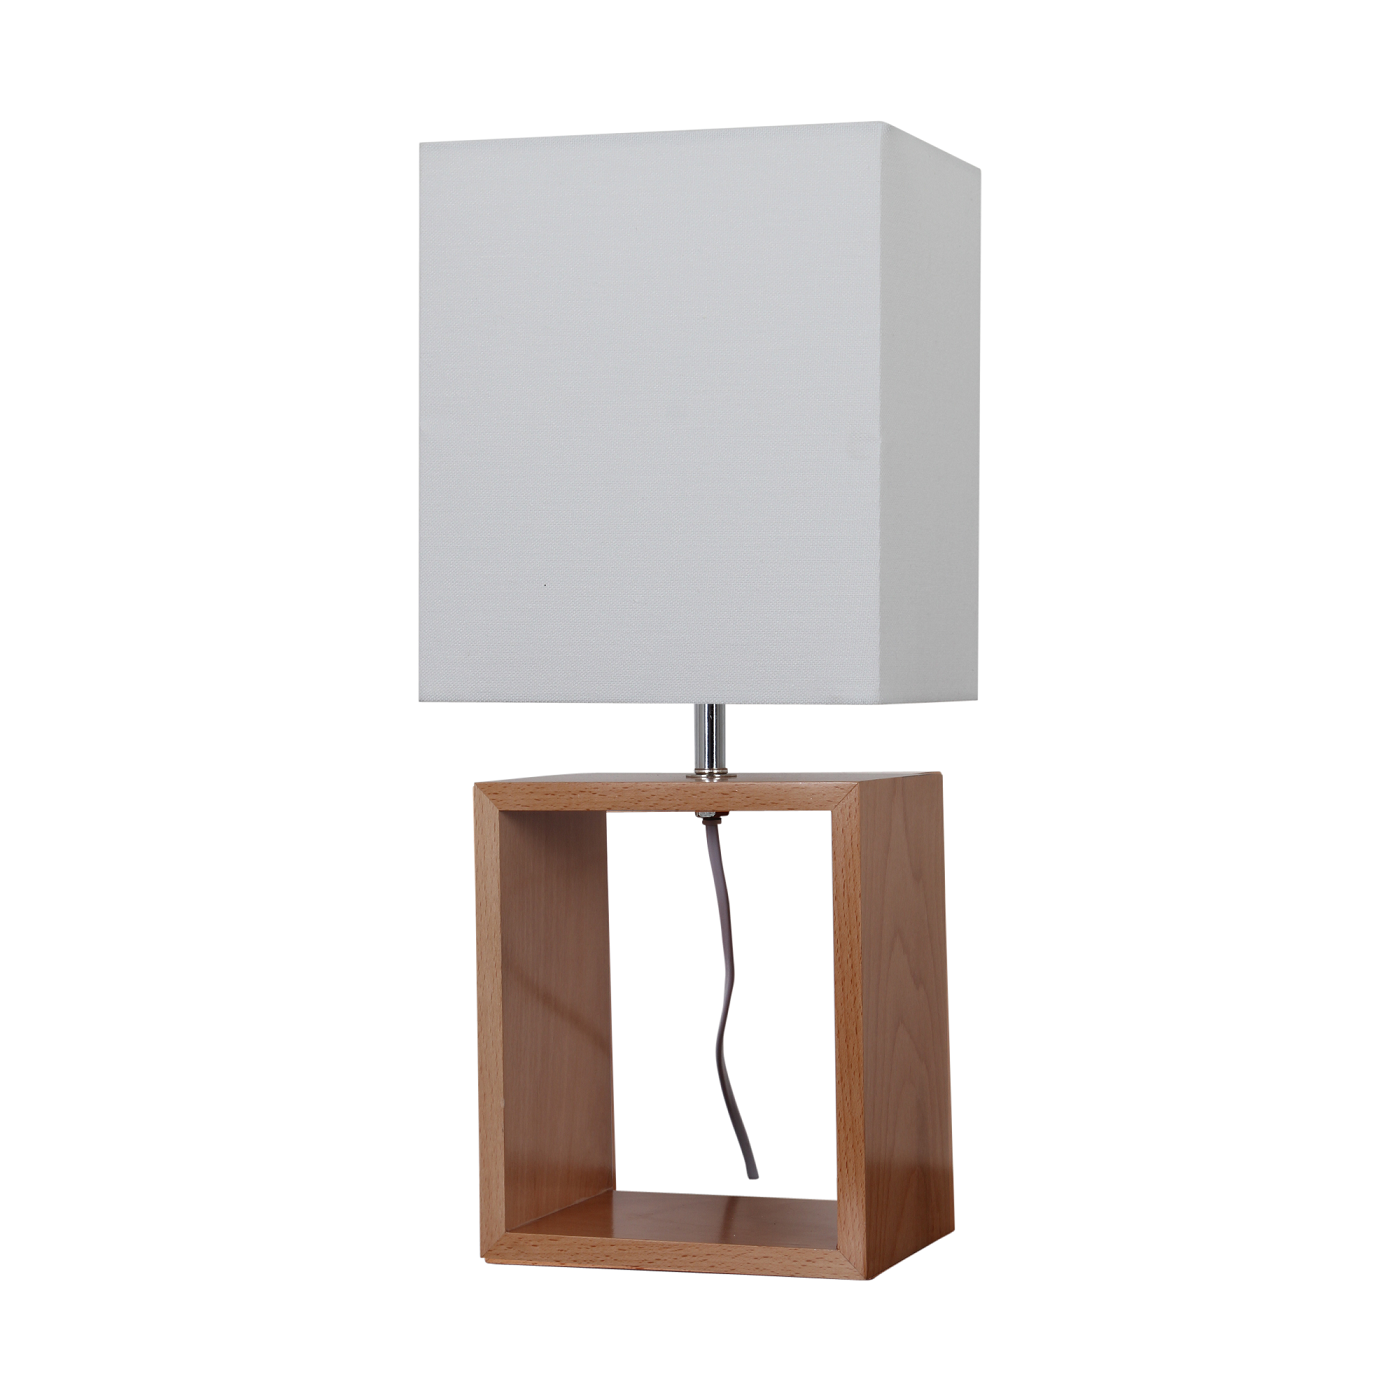 pair of tall modern wooden cube shaped bedside table lamps with linen shades. Black Bedroom Furniture Sets. Home Design Ideas